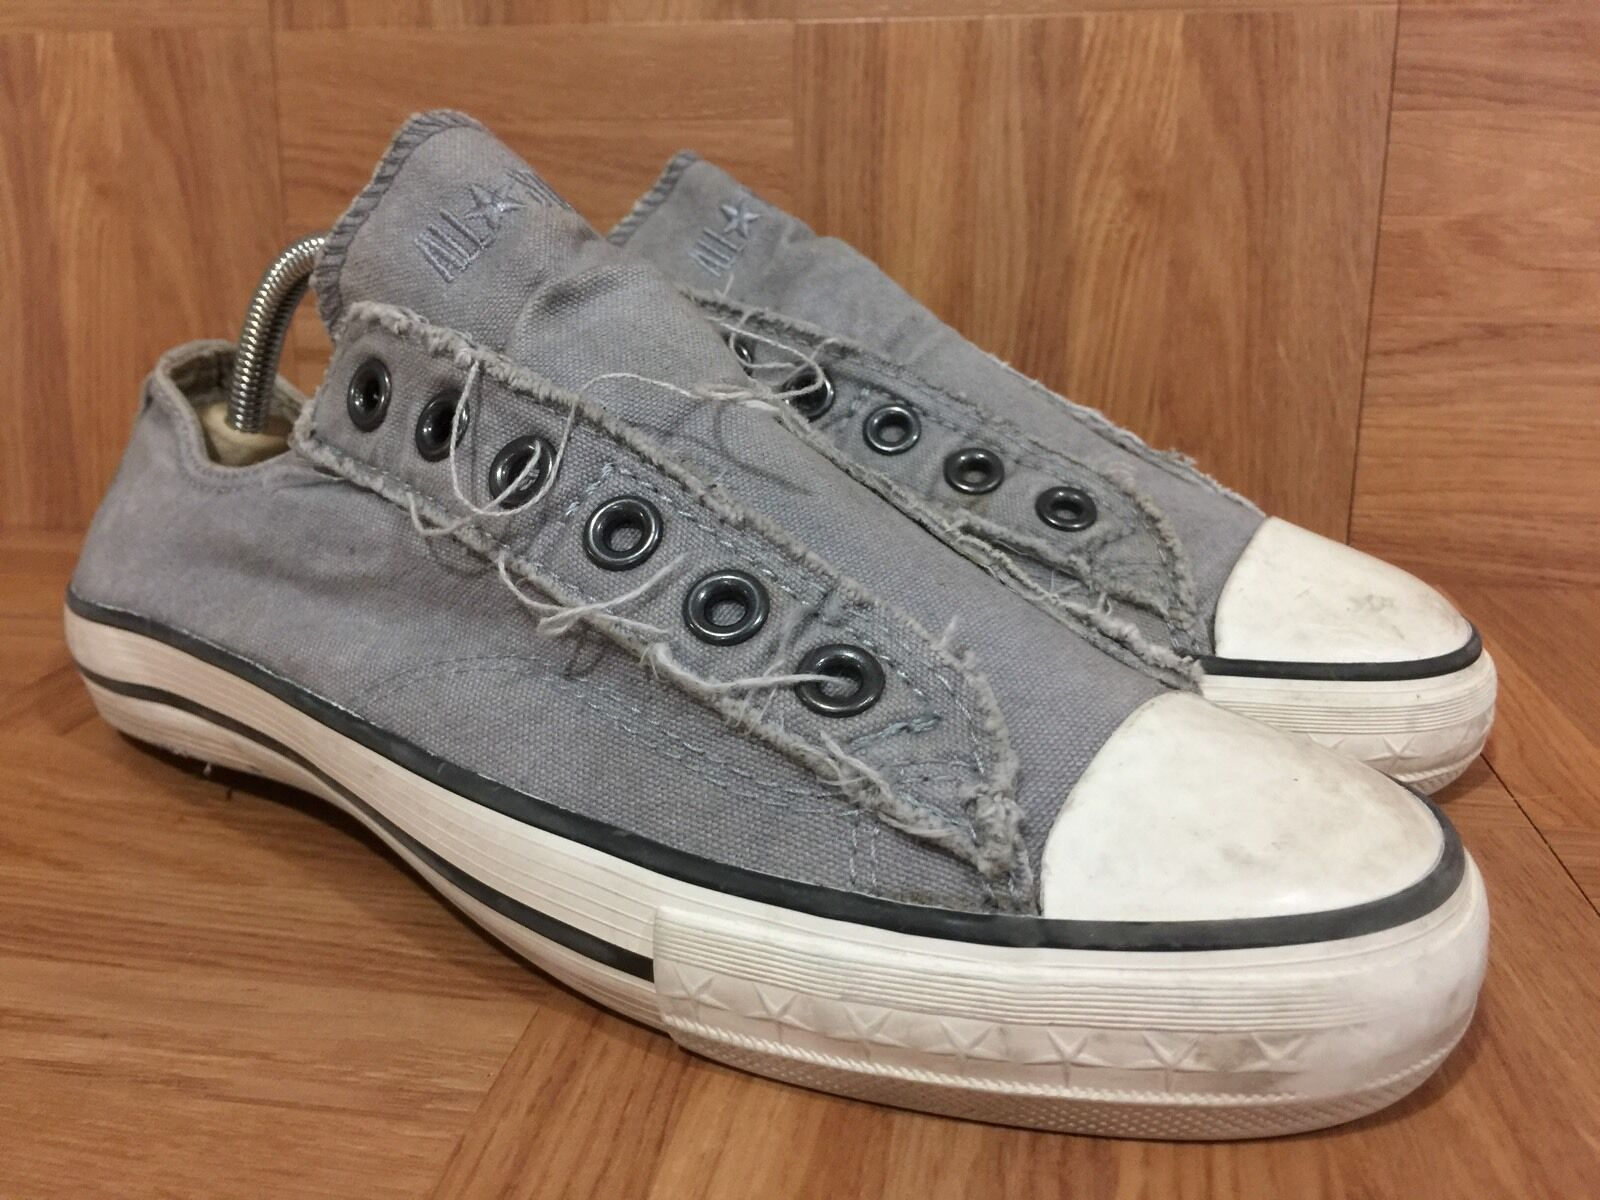 Vintage� Converse Washed John Varvatos Distressed Laceless Washed Converse Gray Slip On Sz 6 LE aab43a